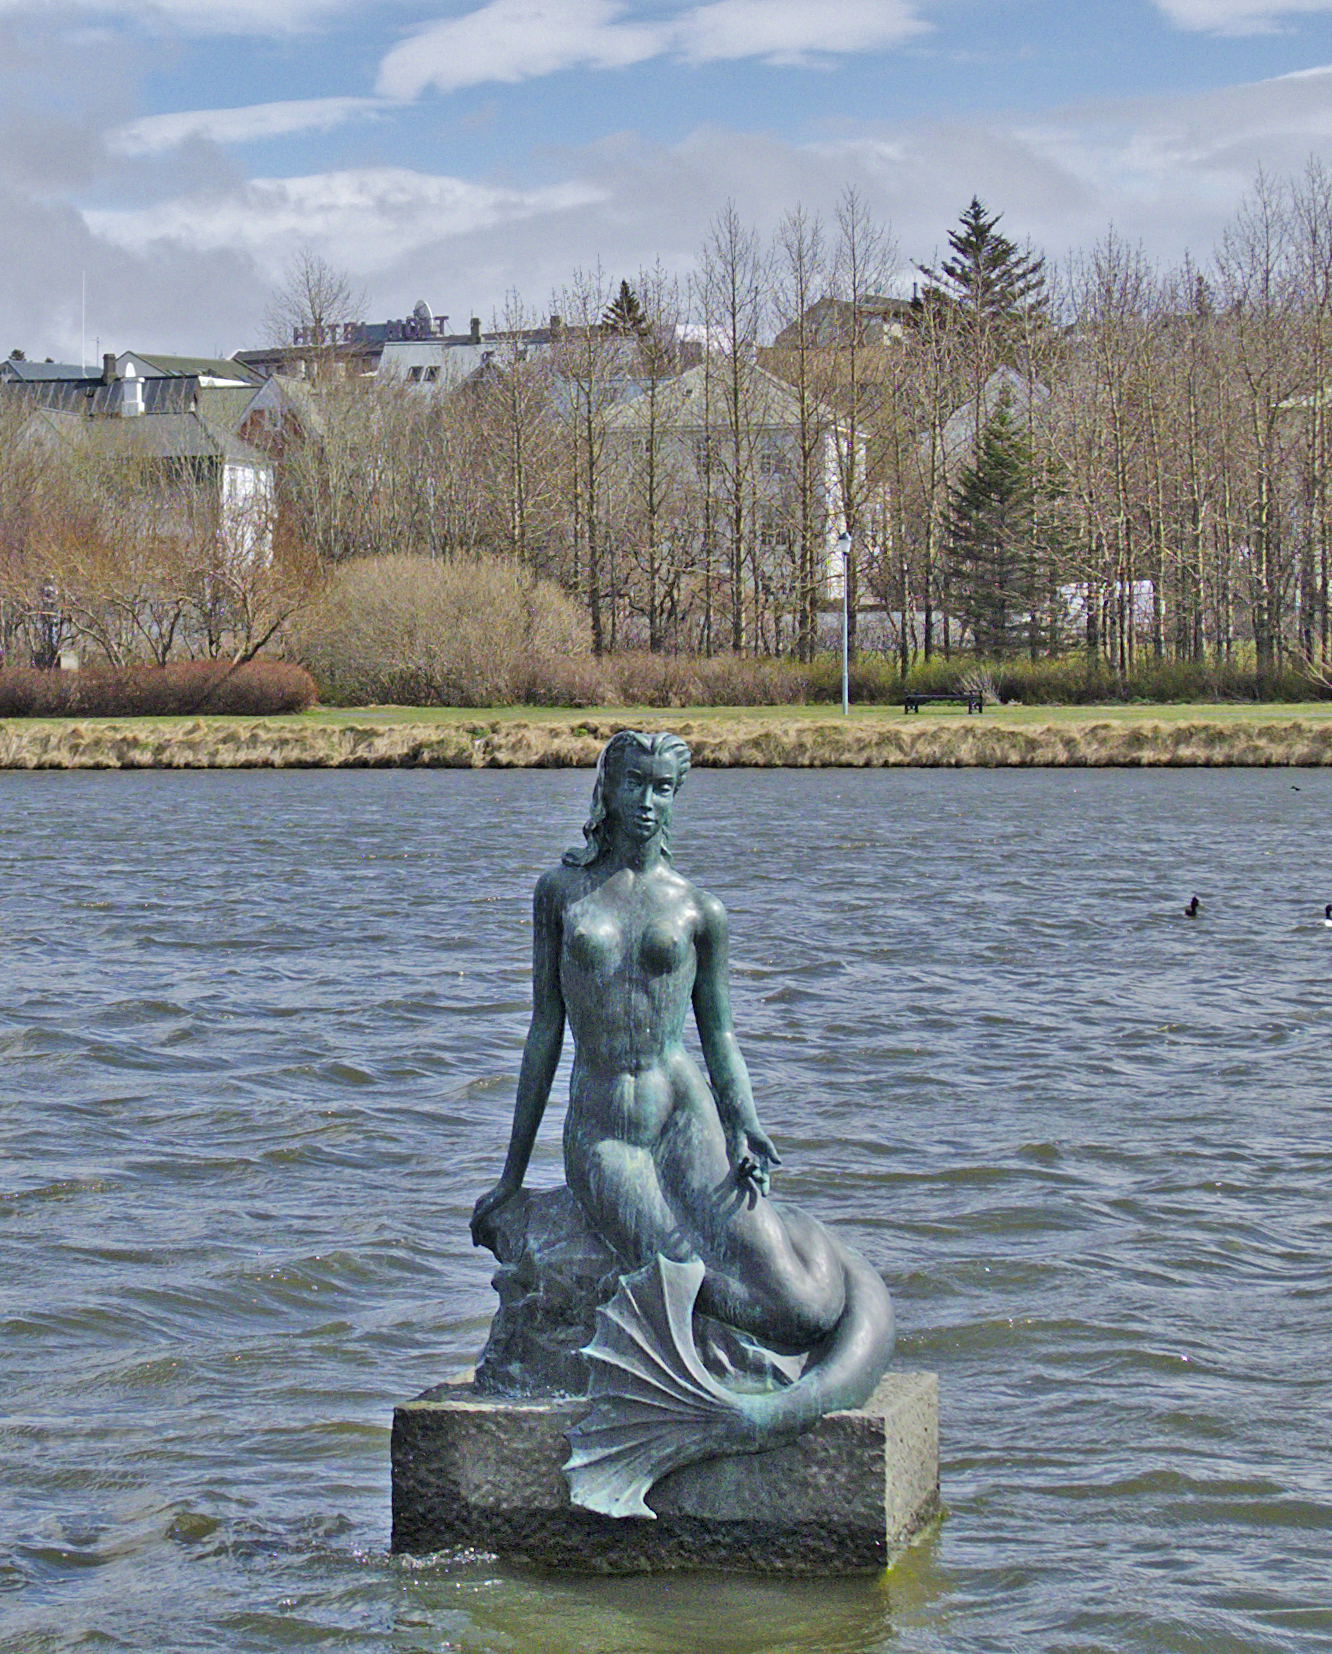 The Hafmeyan (mermaid) in Reykjavik.  Photo by Rich Daley.